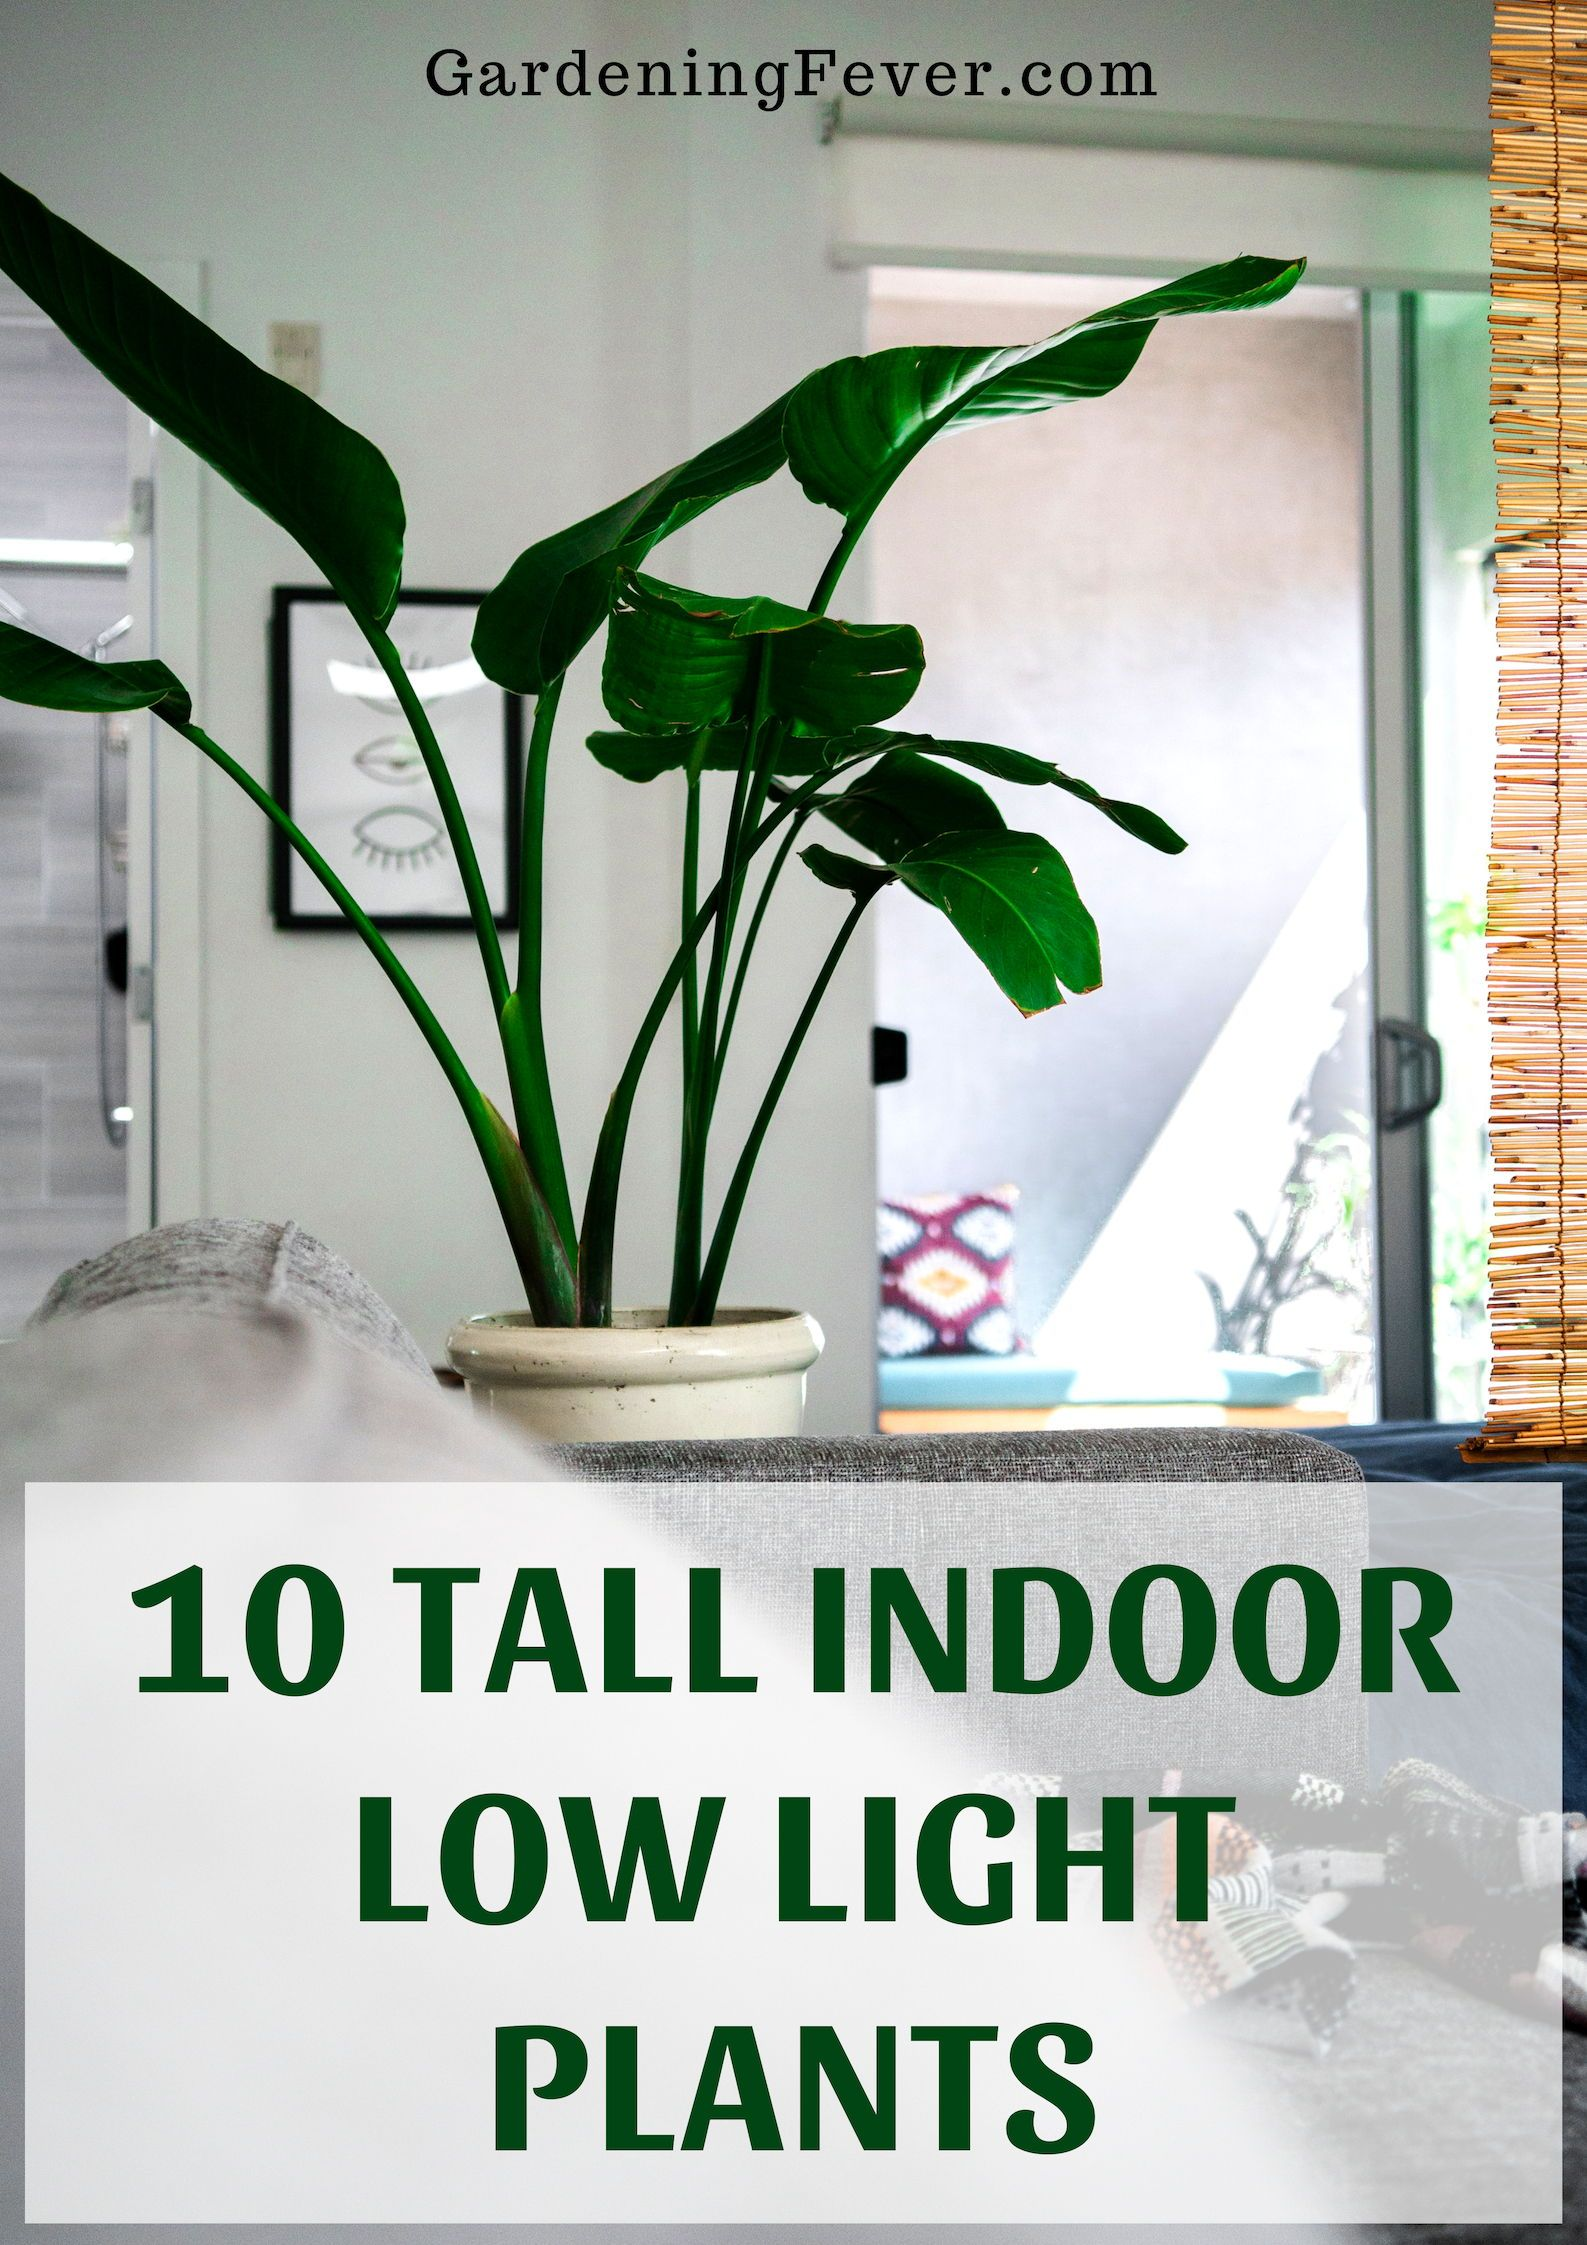 10 Tall Indoor Low Light Plants Agriculture Indoor Plants Low